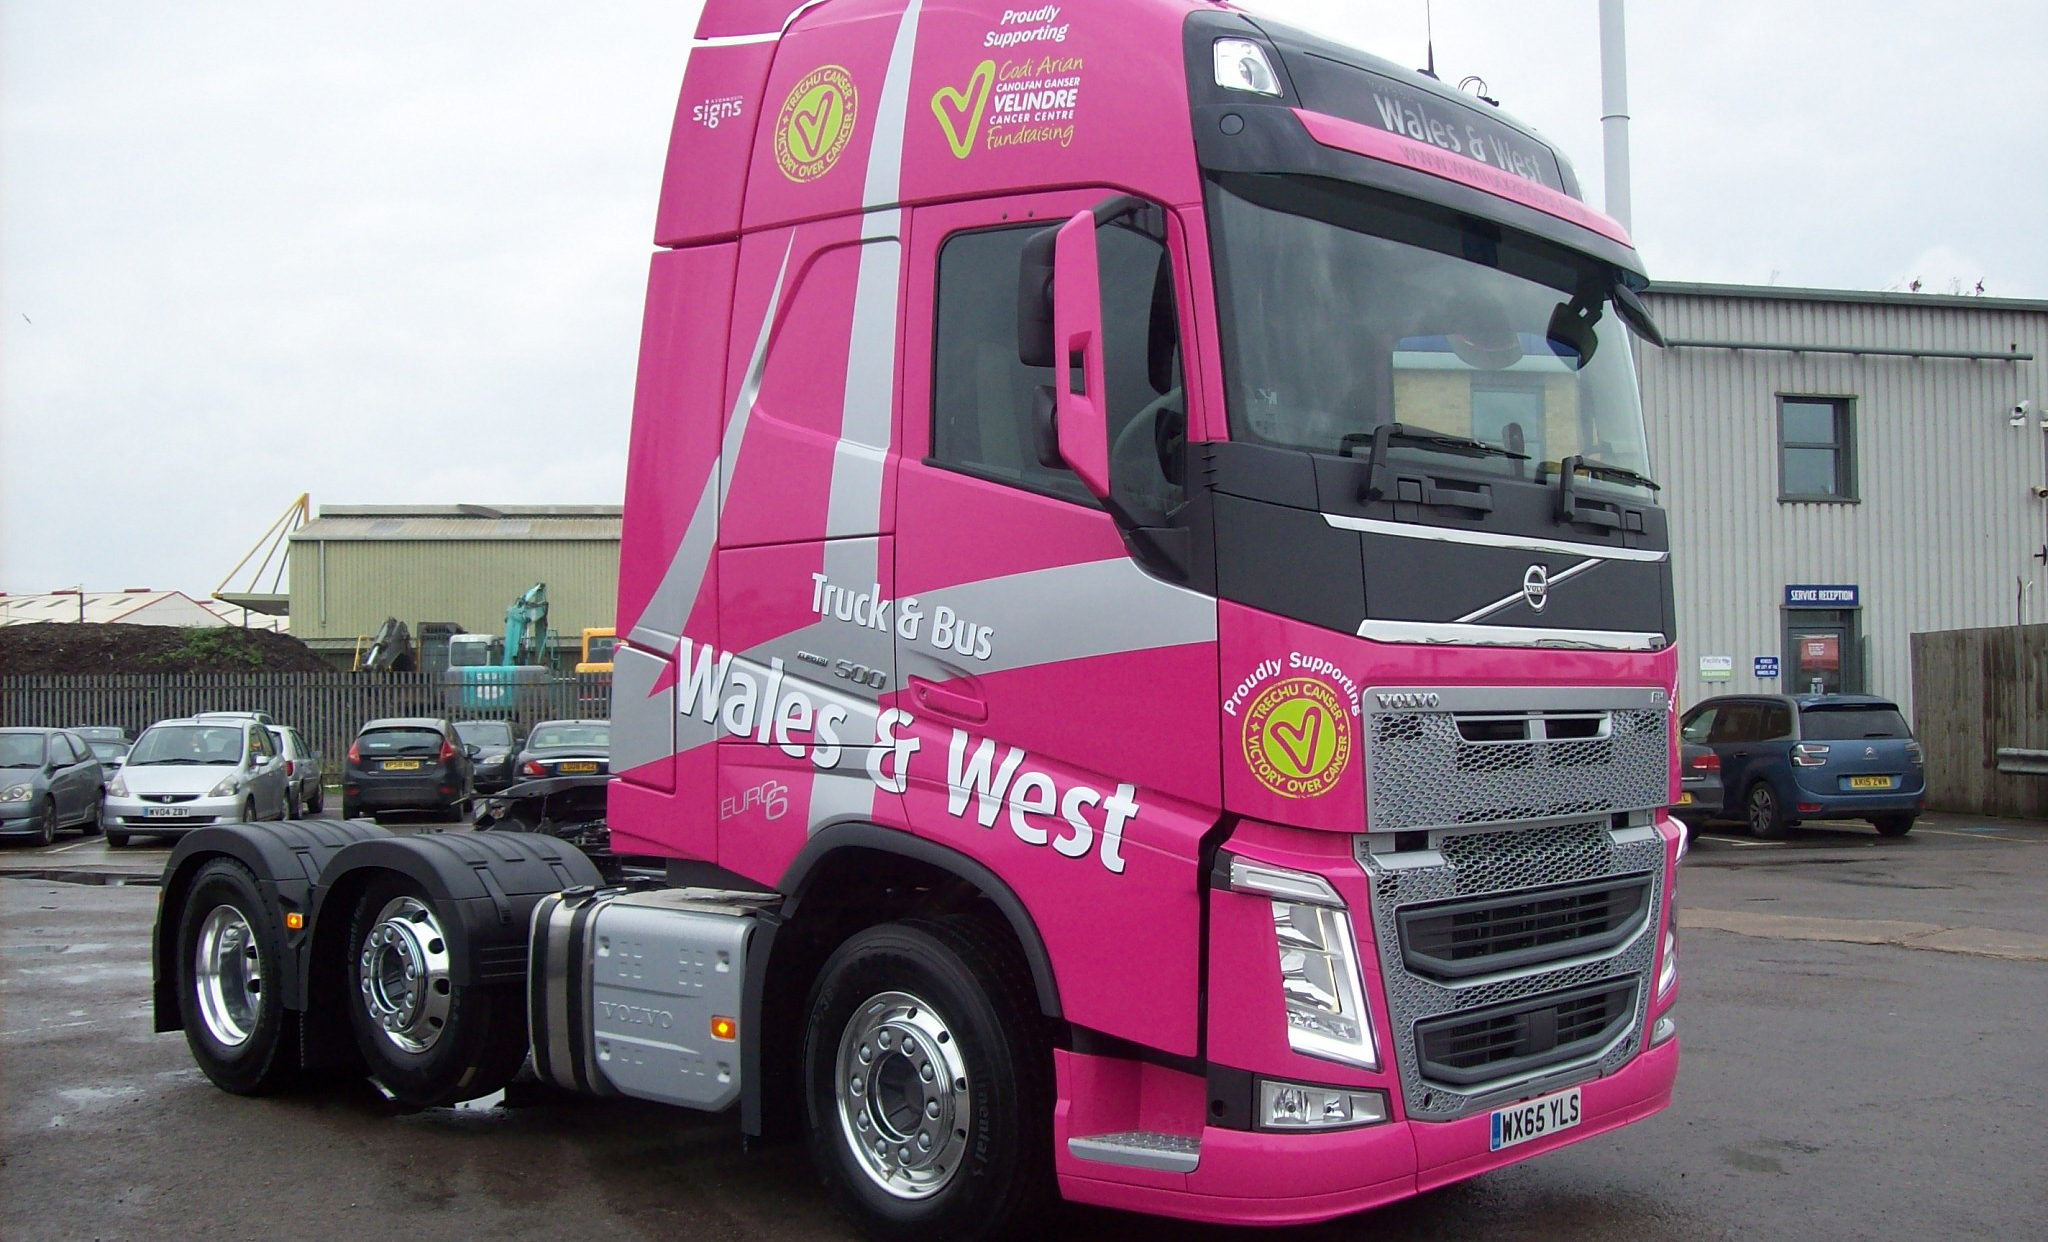 Truck and Bus Wales & West FH Demo supports Velindre Cancer Centre